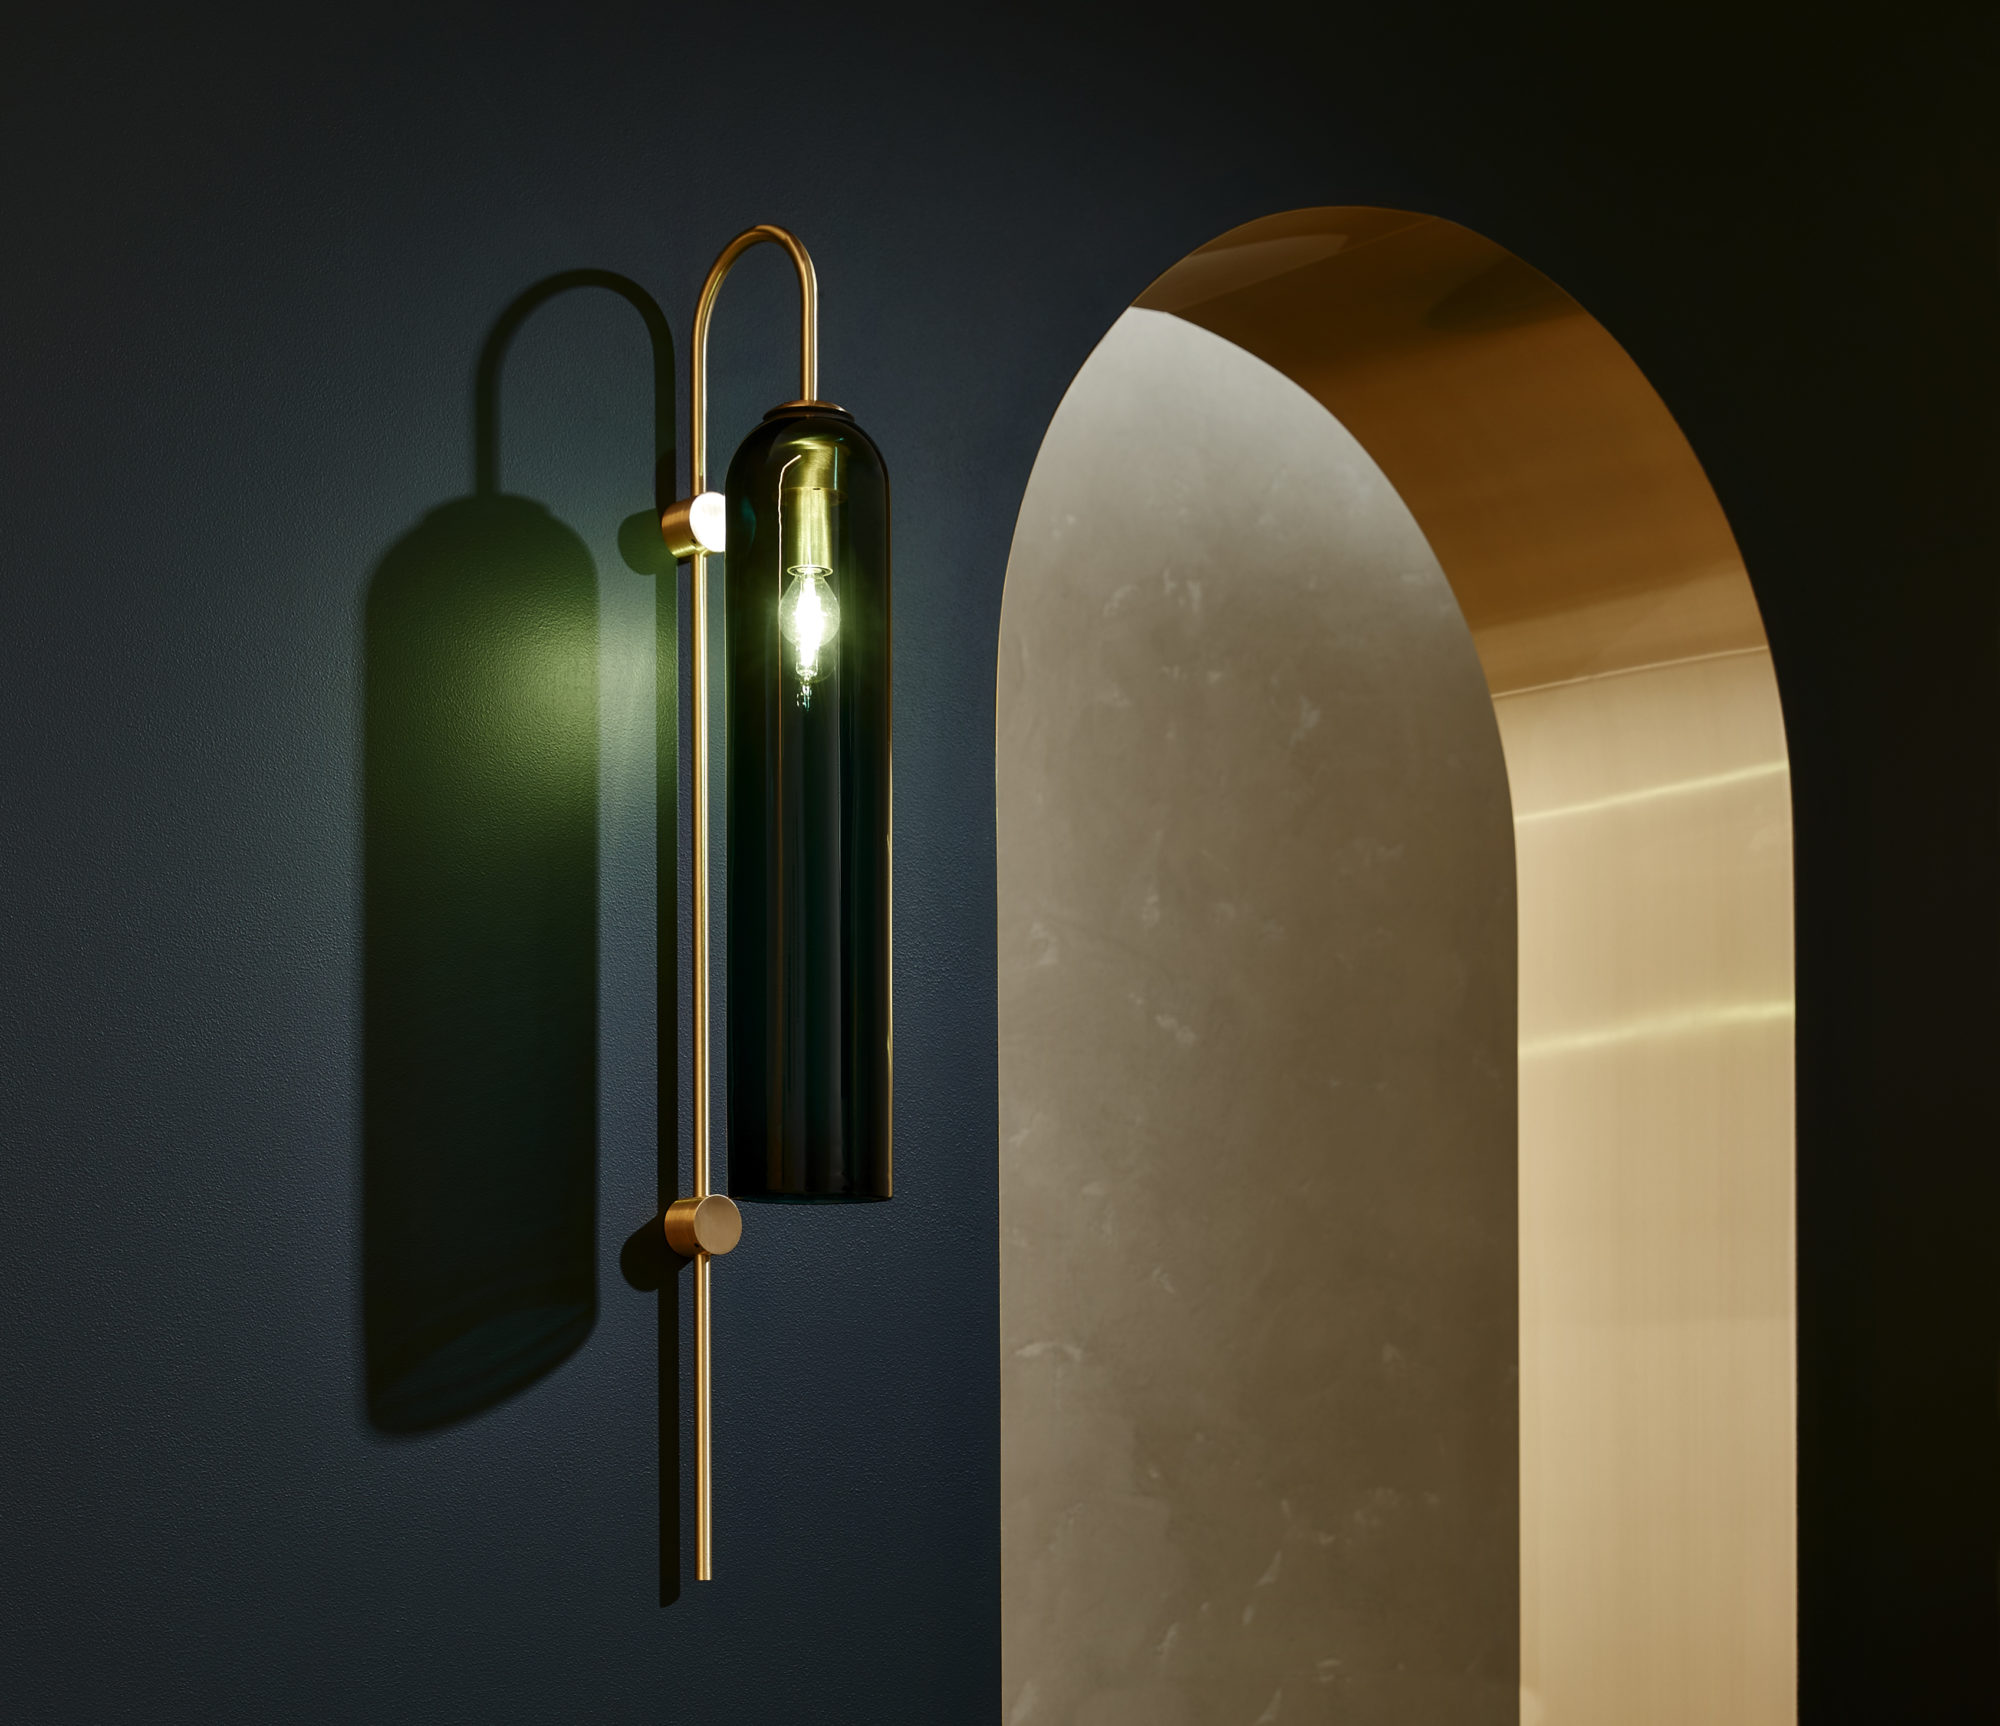 The simple silhouette of this refined glass and brass fixture adds a modern touch to any entryway